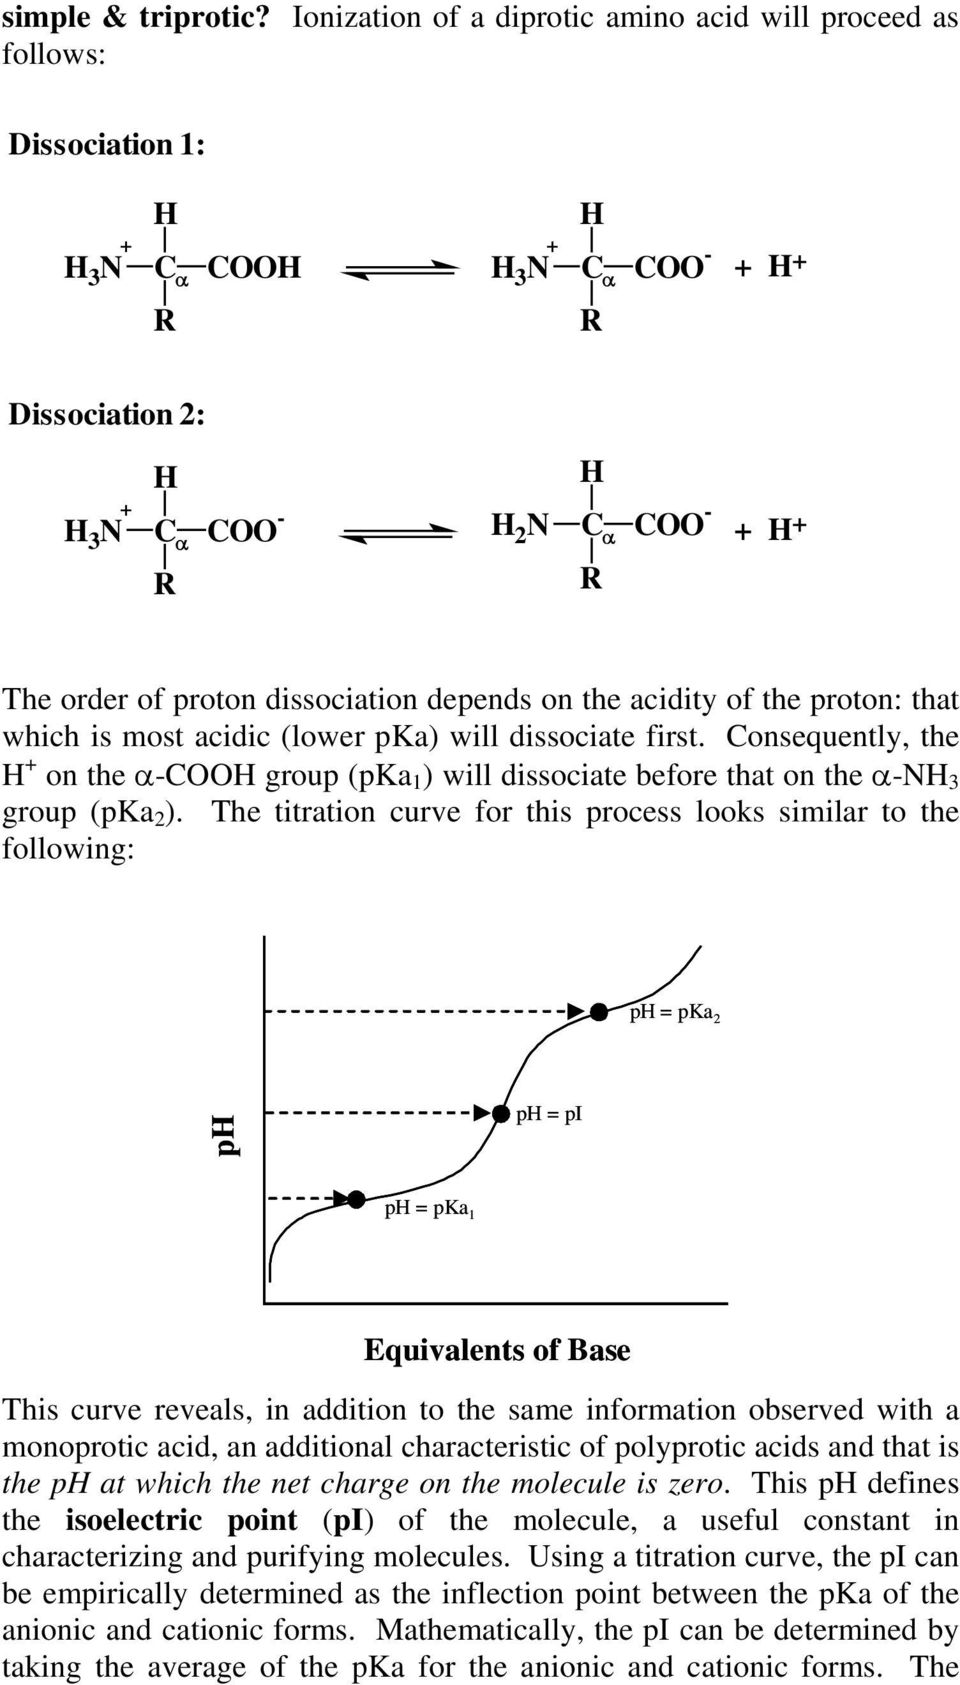 dissociation depends on the acidity of the proton: that which is most acidic (lower pka) will dissociate first.